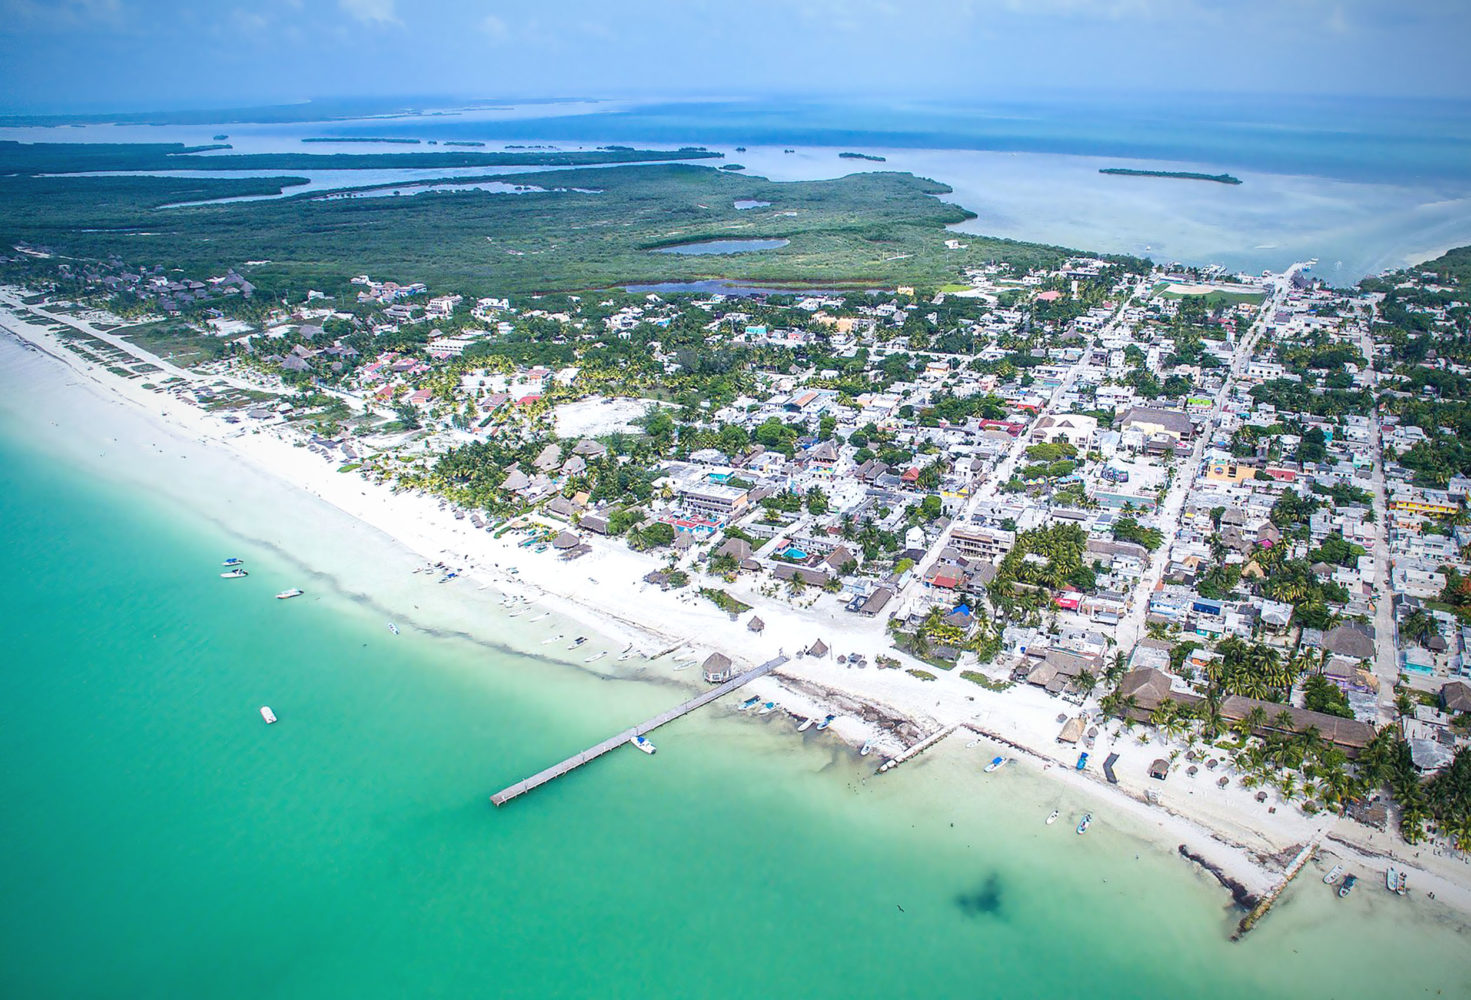 Beyond Cancun: Isla Holbox and Rio Lagartos